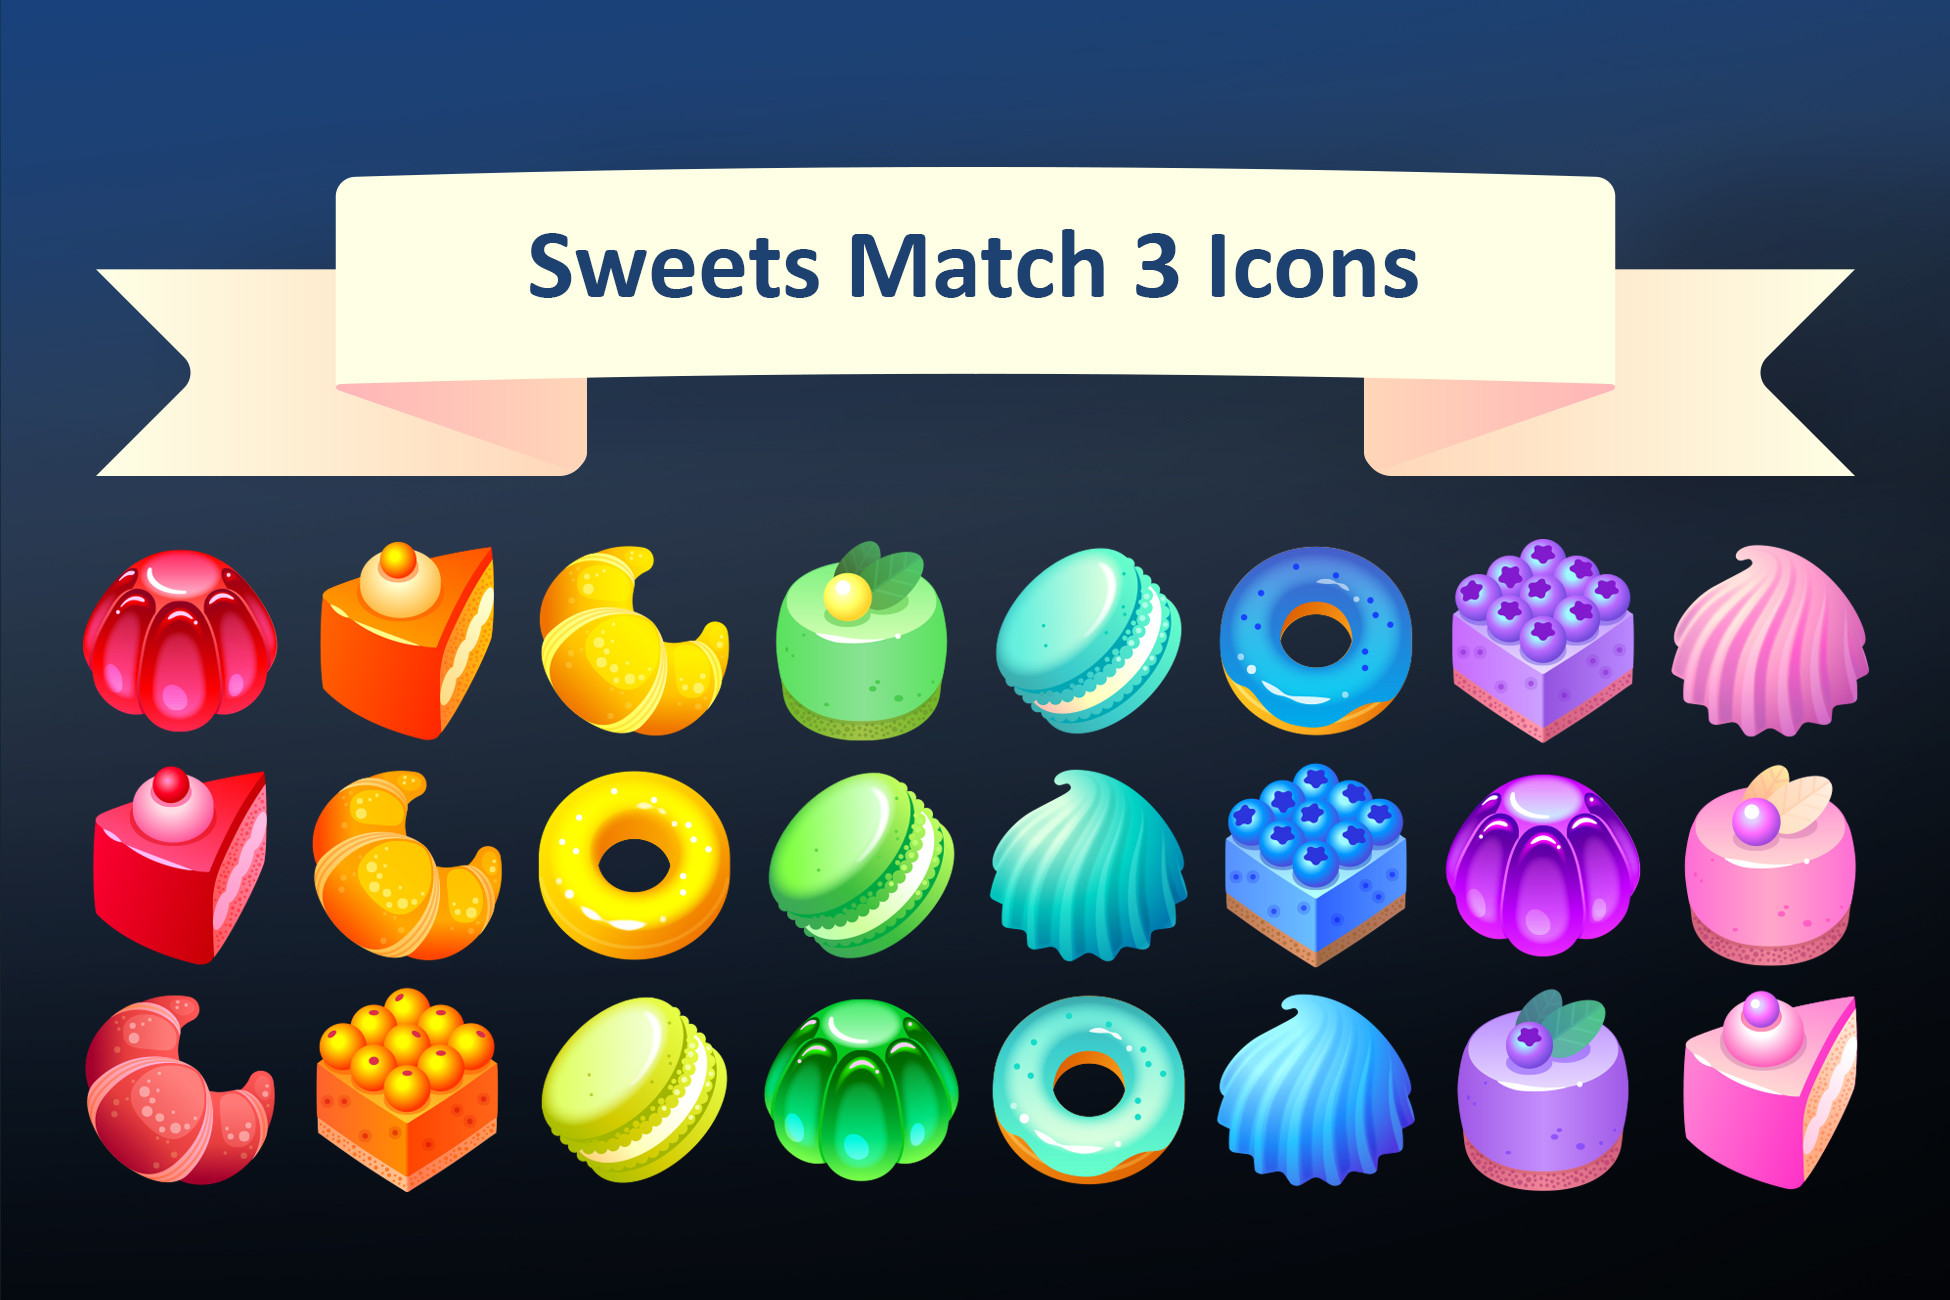 Sweets Match 3 Icons